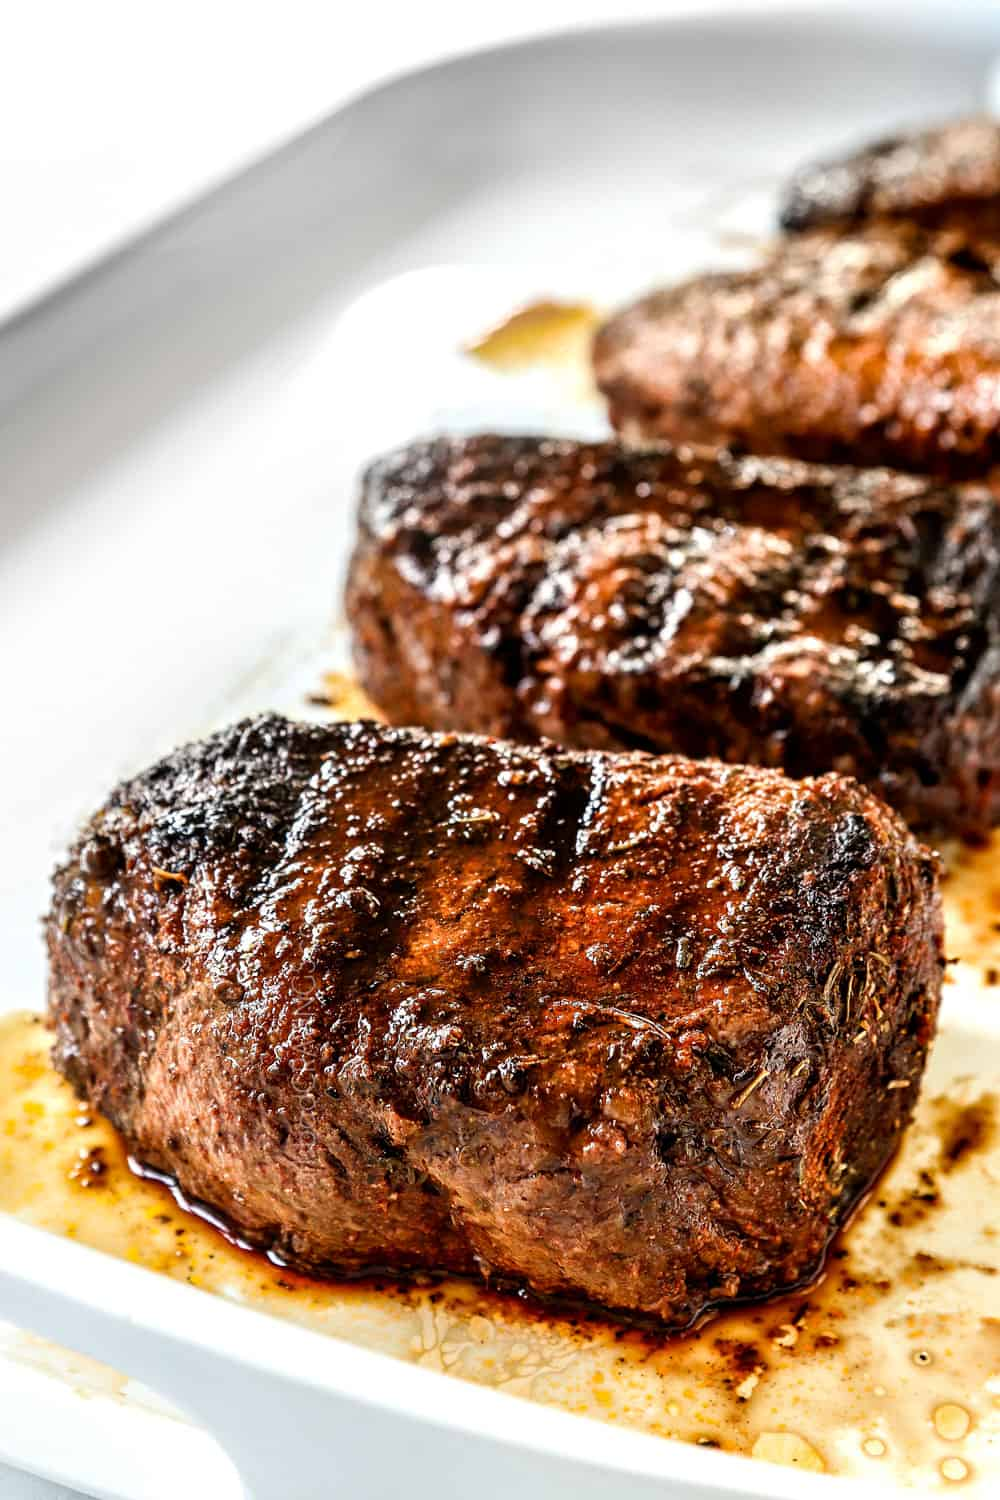 up close side view of grilled sirloin steak showing how juicy it is